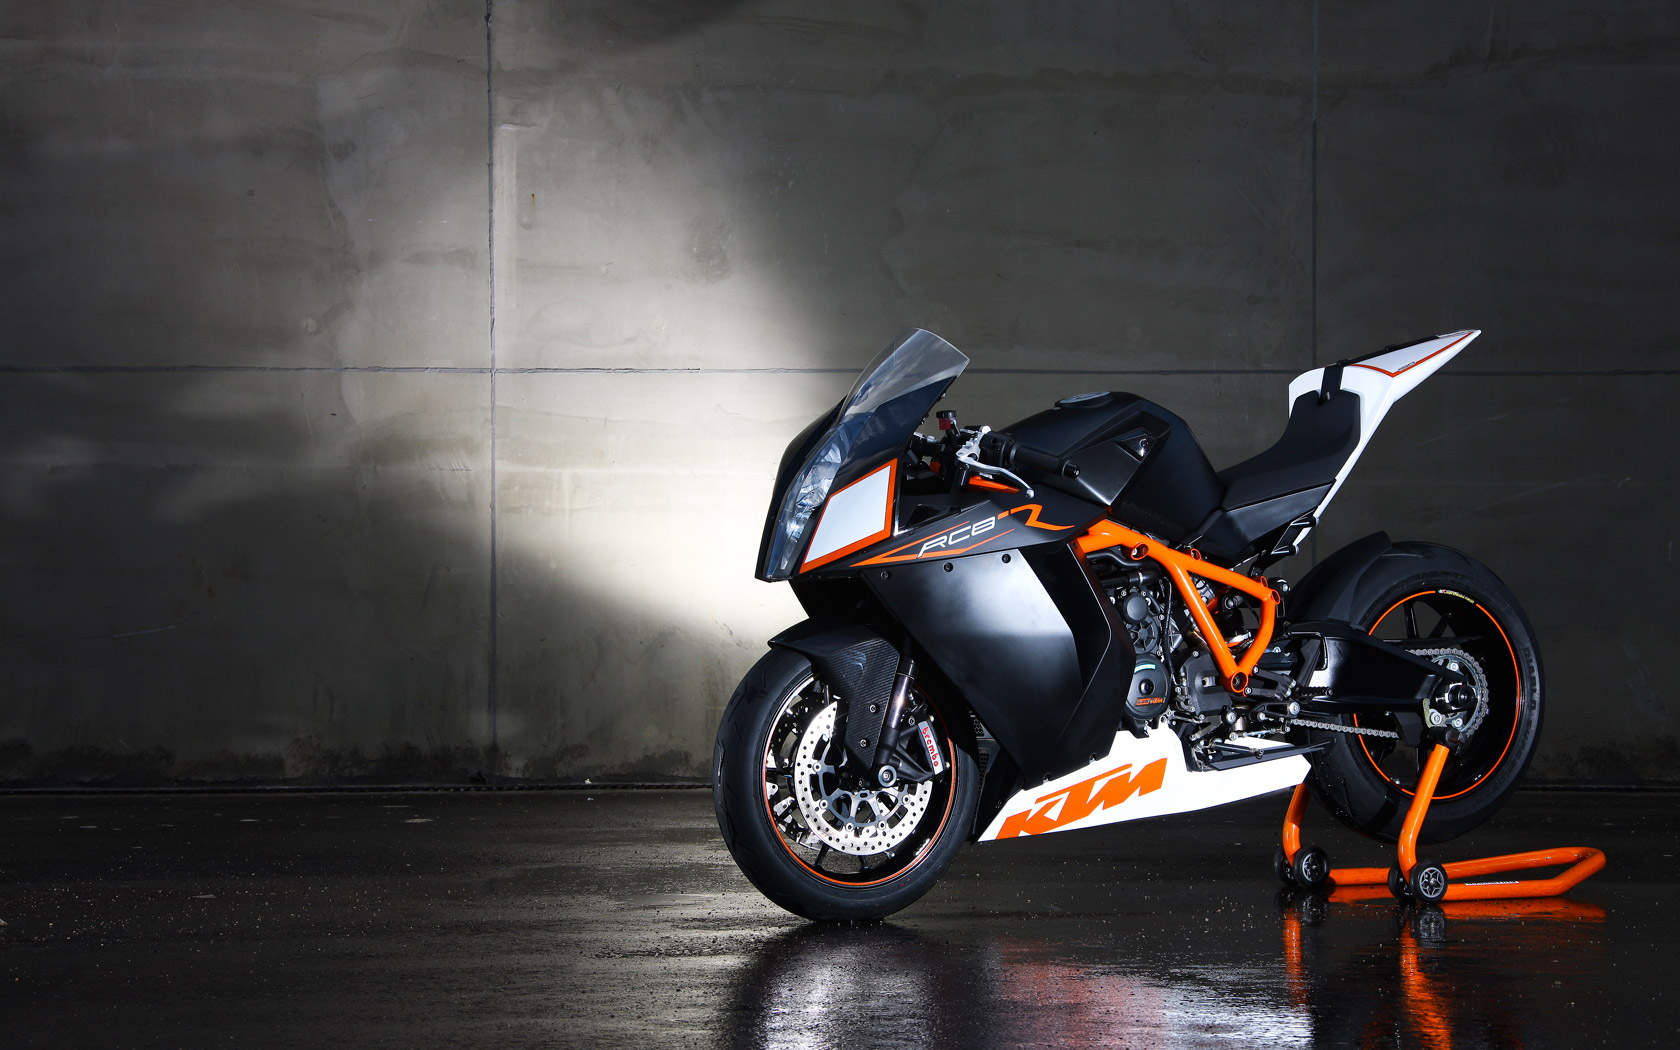 Ktm motorcycles hd wallpapers free wallaper downloads ktm sport - Ktm Rc8 R High Resolution Wallpapers